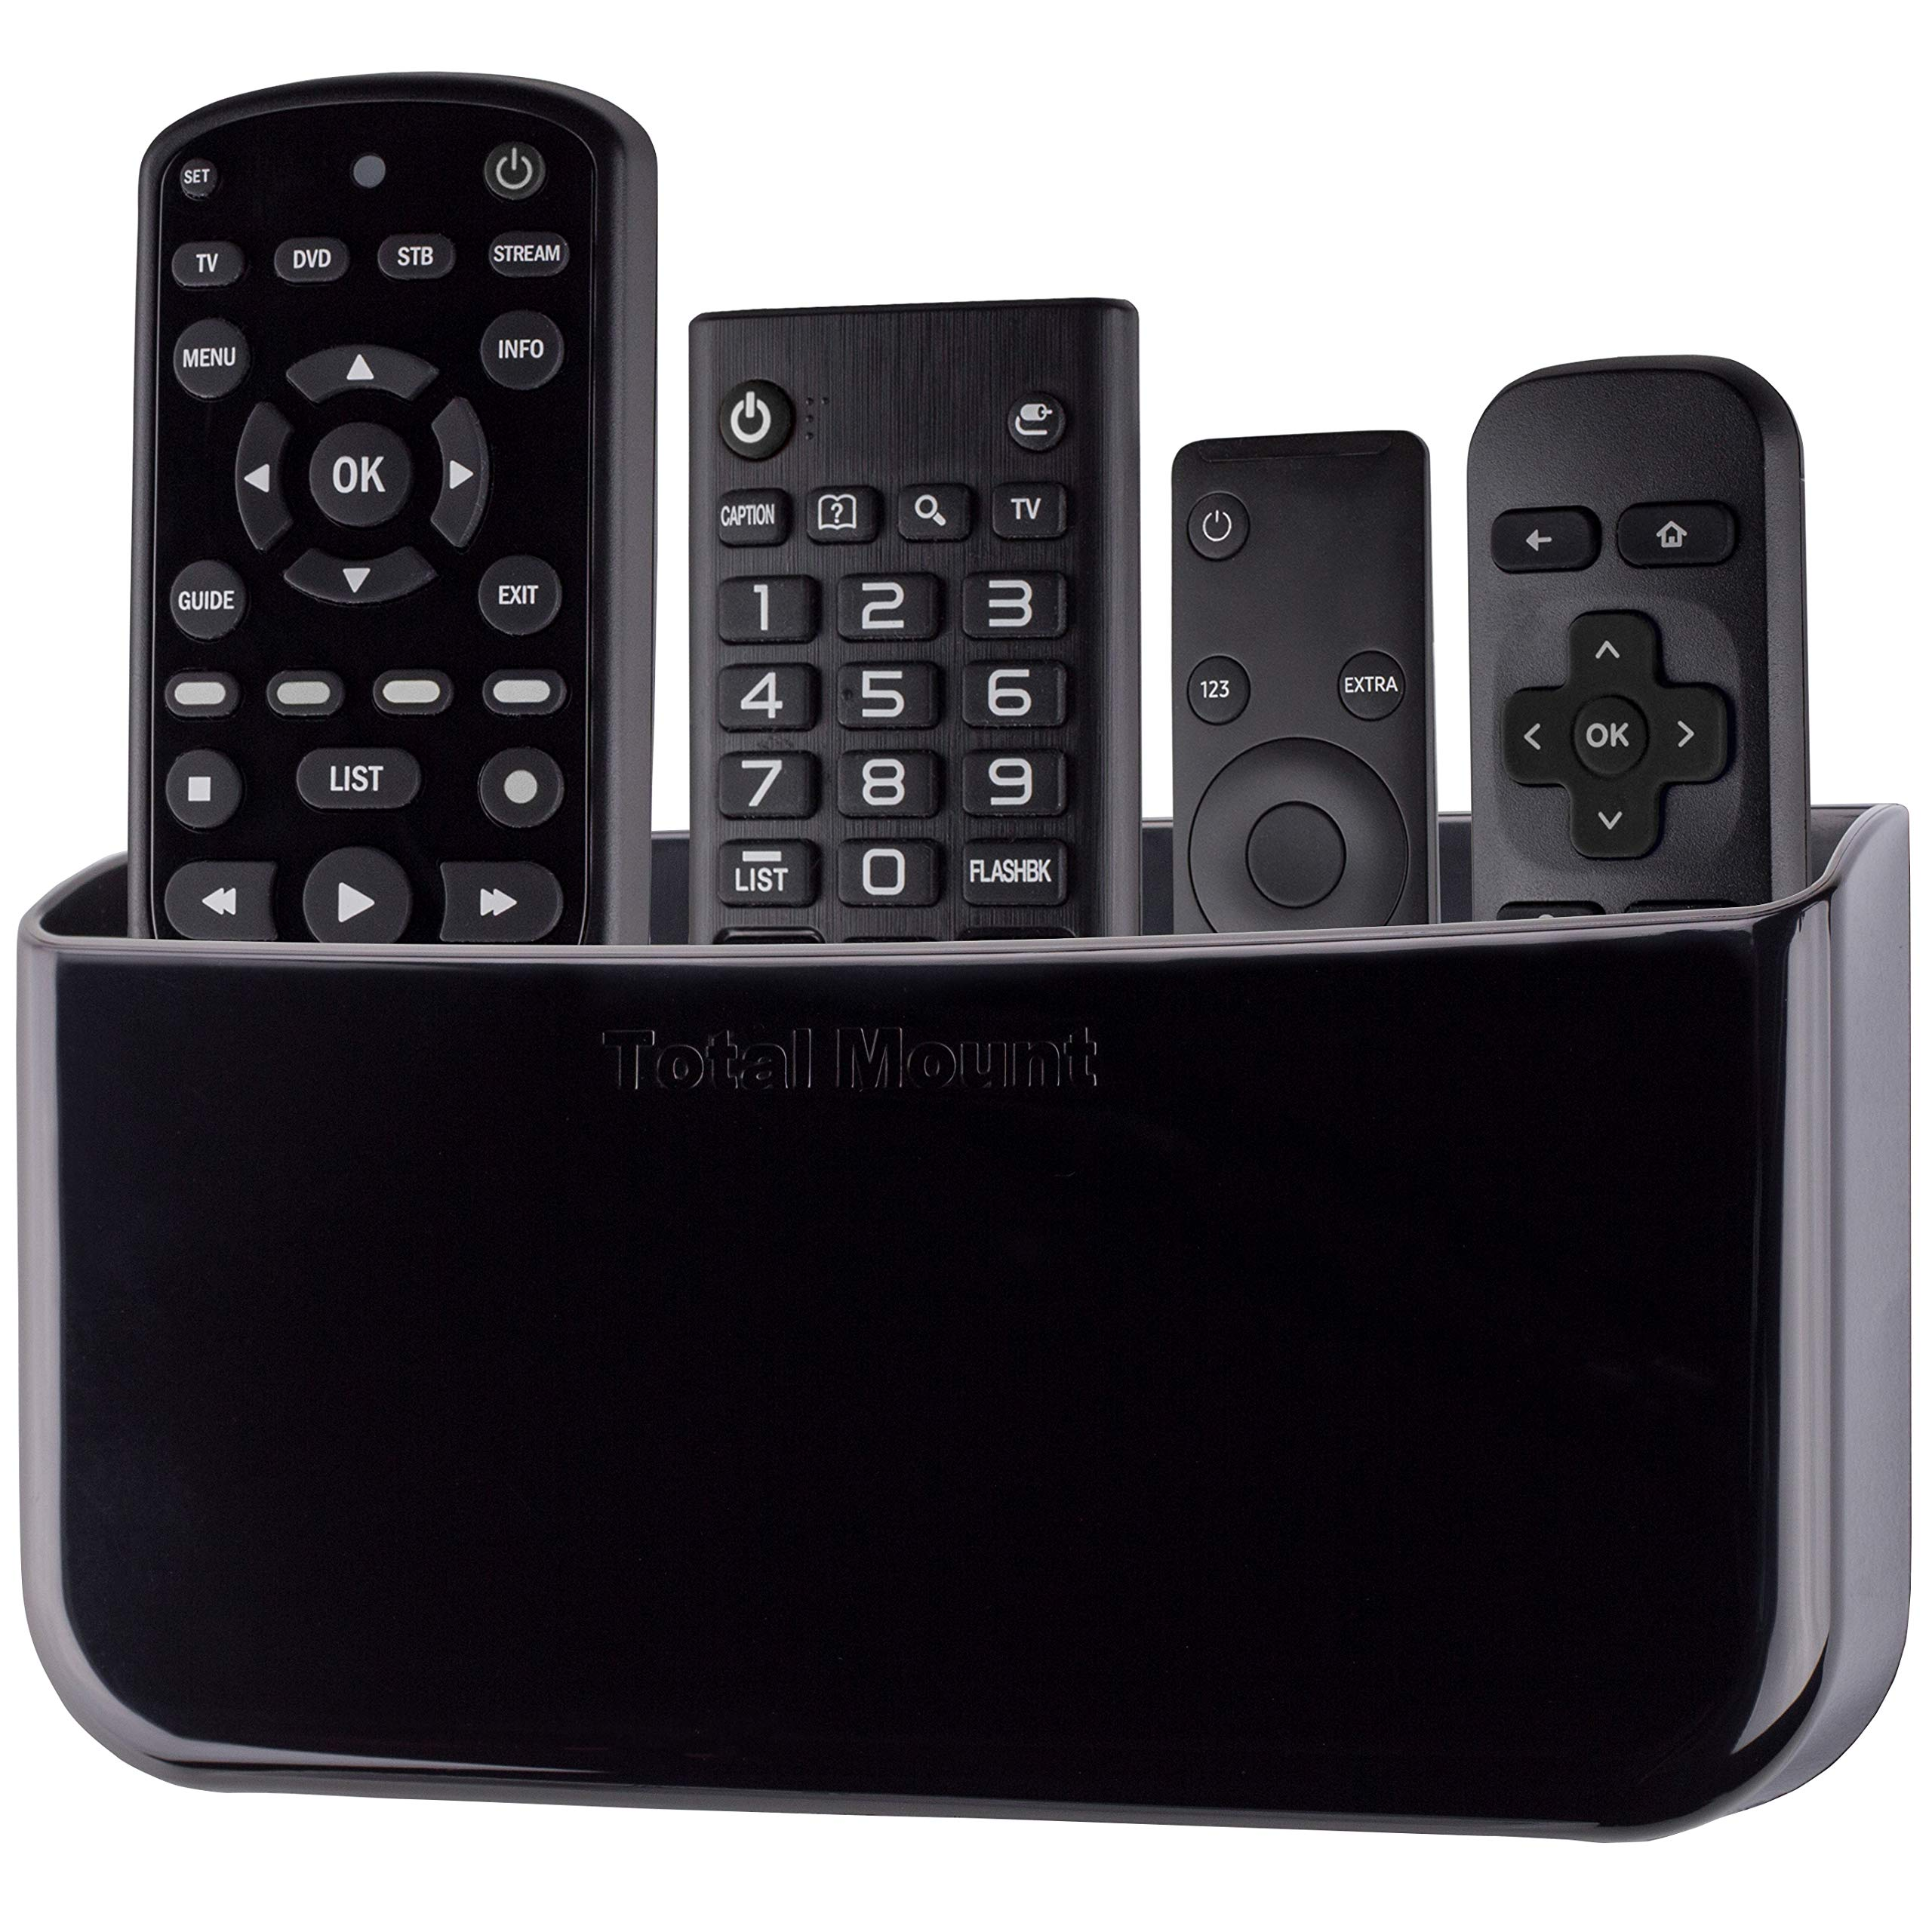 TotalMount Hole-Free Remote Holder - Eliminates Need to Drill Holes in Your Wall (for 3 or 4 Remotes - Black - Quantity 1) by TotalMount